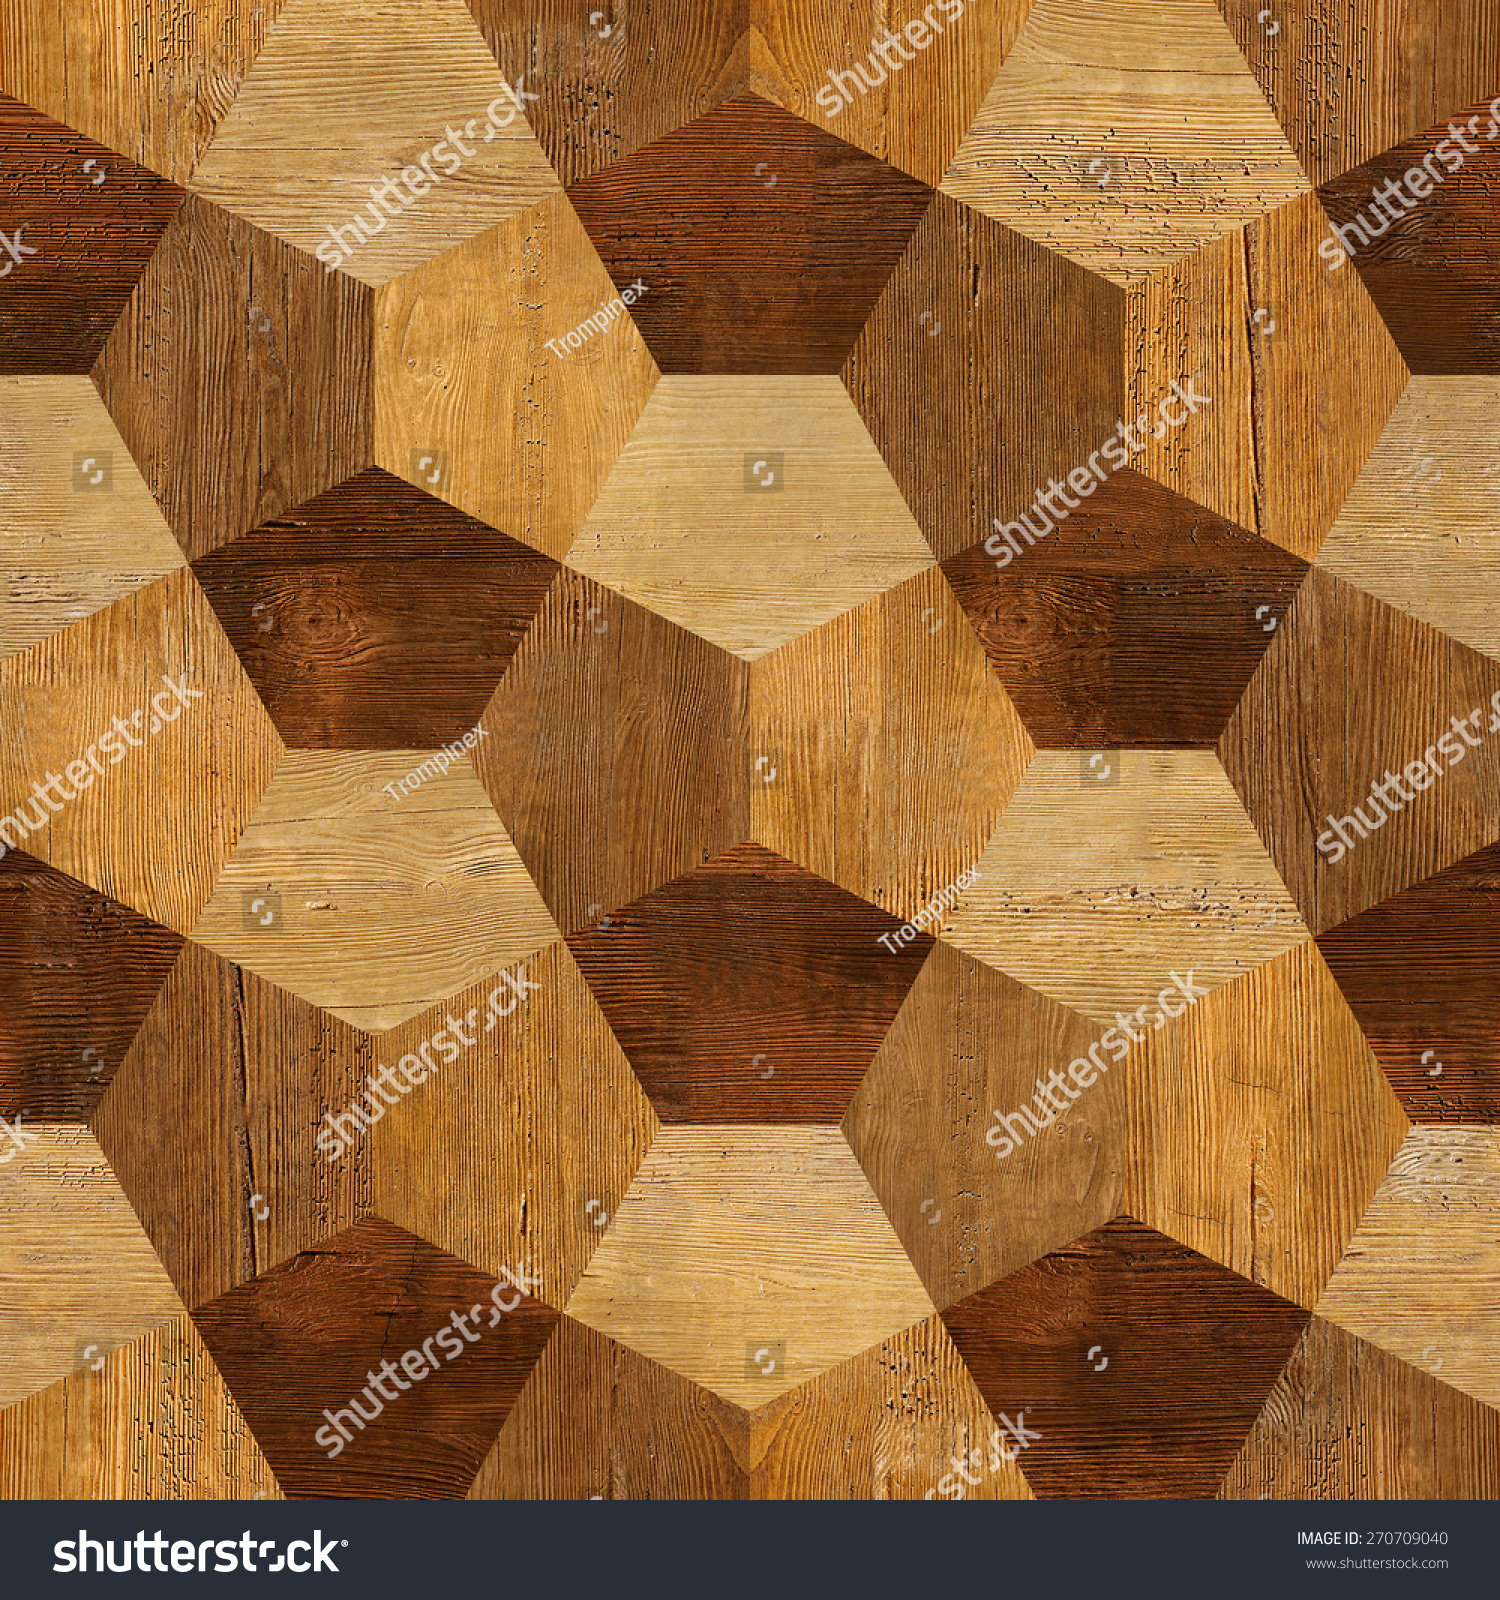 Ordinaire Abstract Decorative Blocks   Interior Wall Decor   Decorative Tiles    Seamless Background   Wood Texture